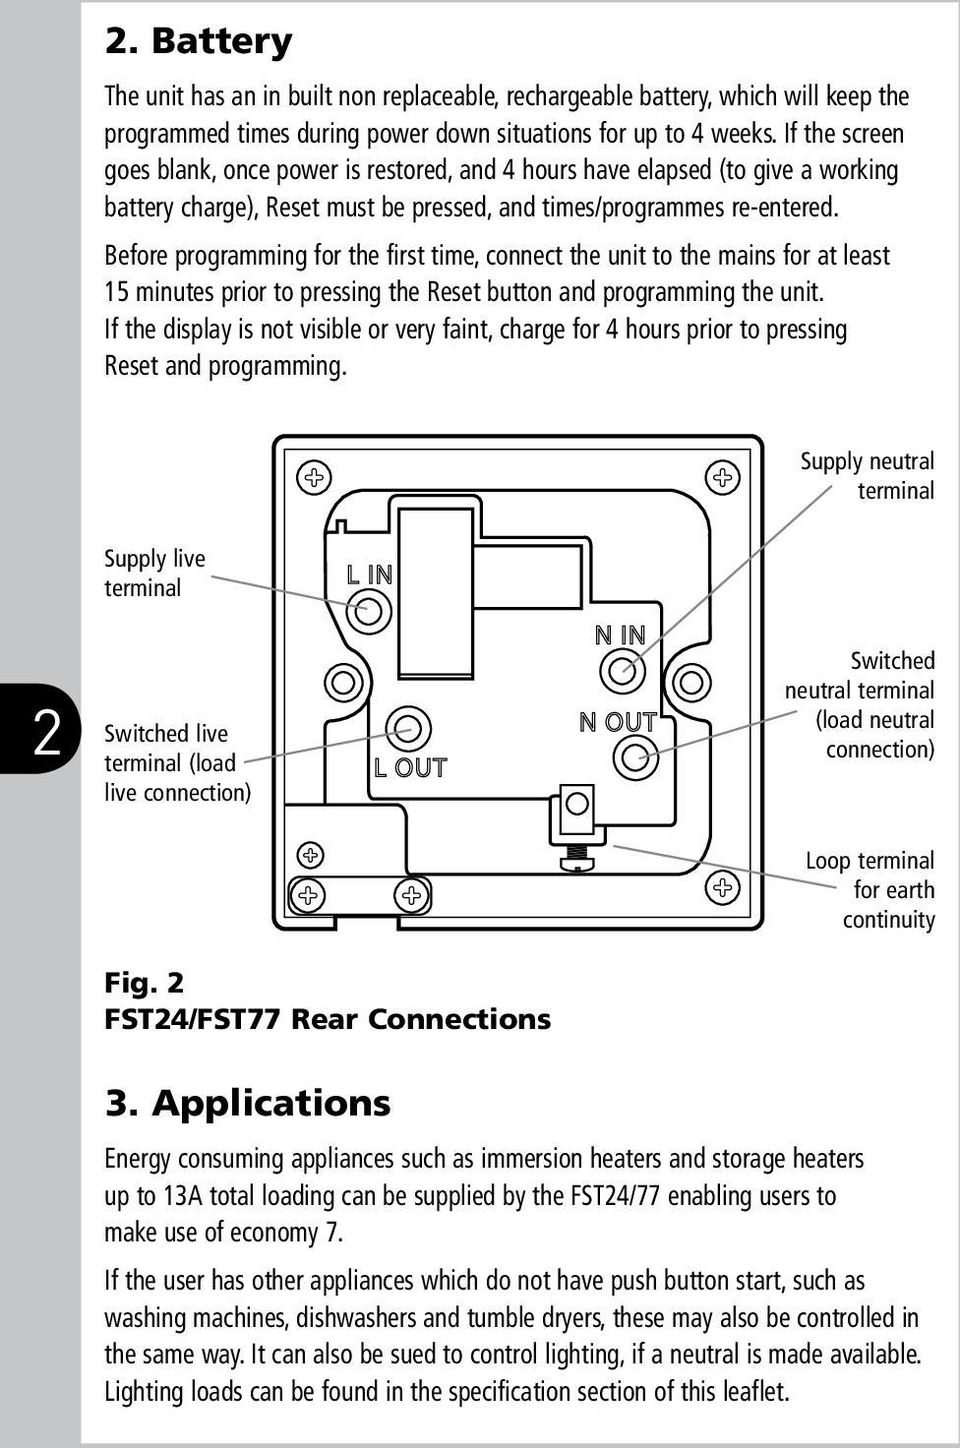 Fused Spur Time Switch Pdf 1 Gang 2 Wire 10a No Neutral Presence Detector Timer Before Programming For The First Connect Unit To Mains At Least